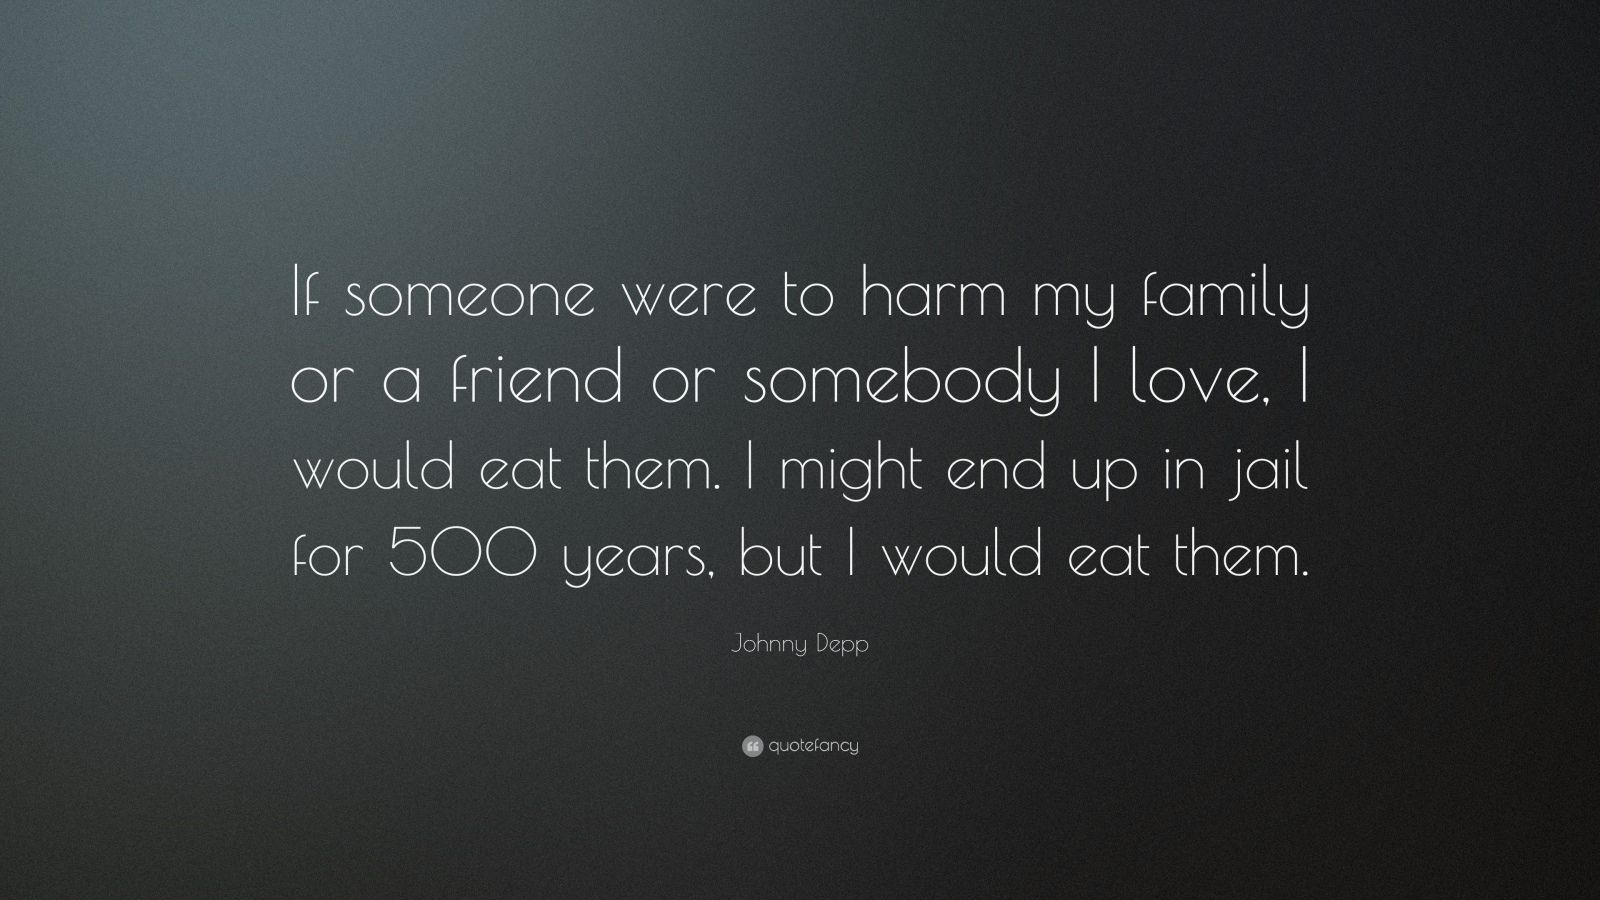 """Johnny Depp Quote: """"If someone were to harm my family or a friend or somebody I love, I would eat them. I might end up in jail for 500 years, but I would eat them."""""""